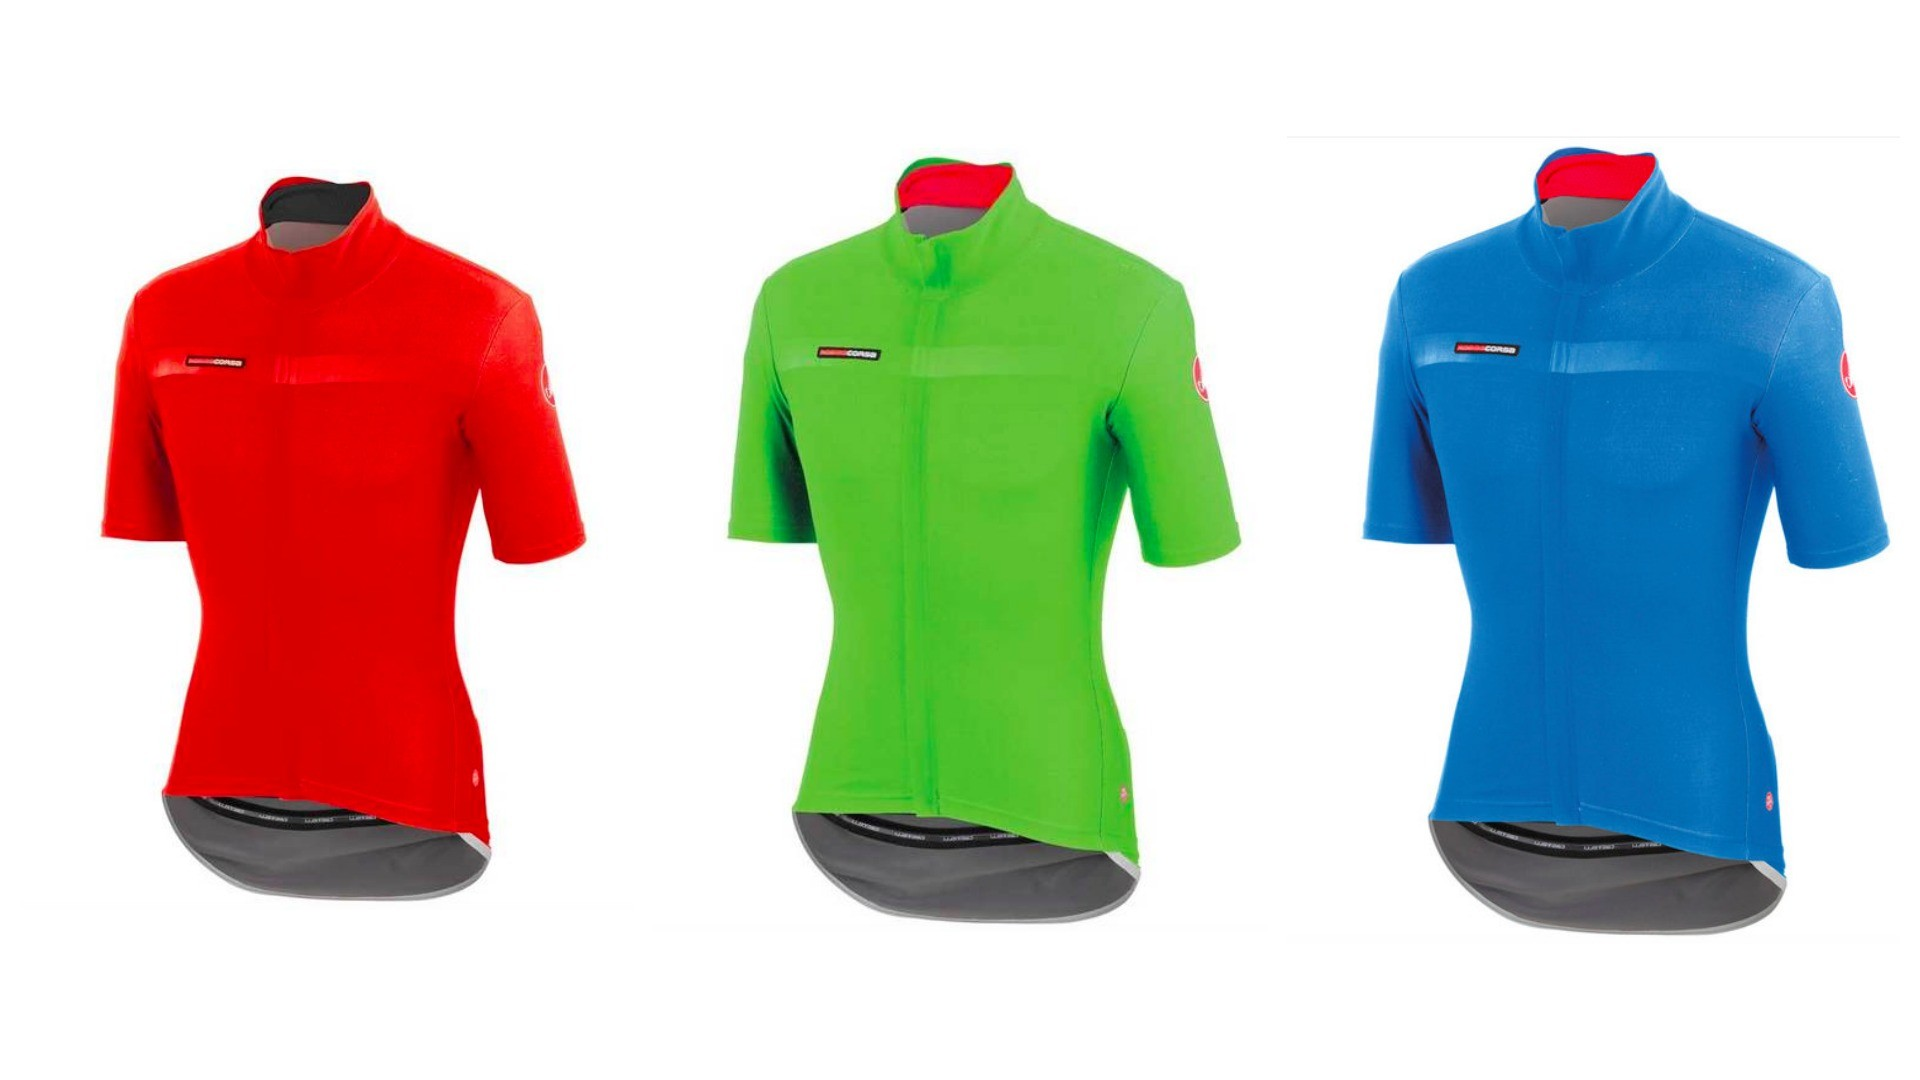 The Gabba jacket from Castelli is great for damp and muggy days